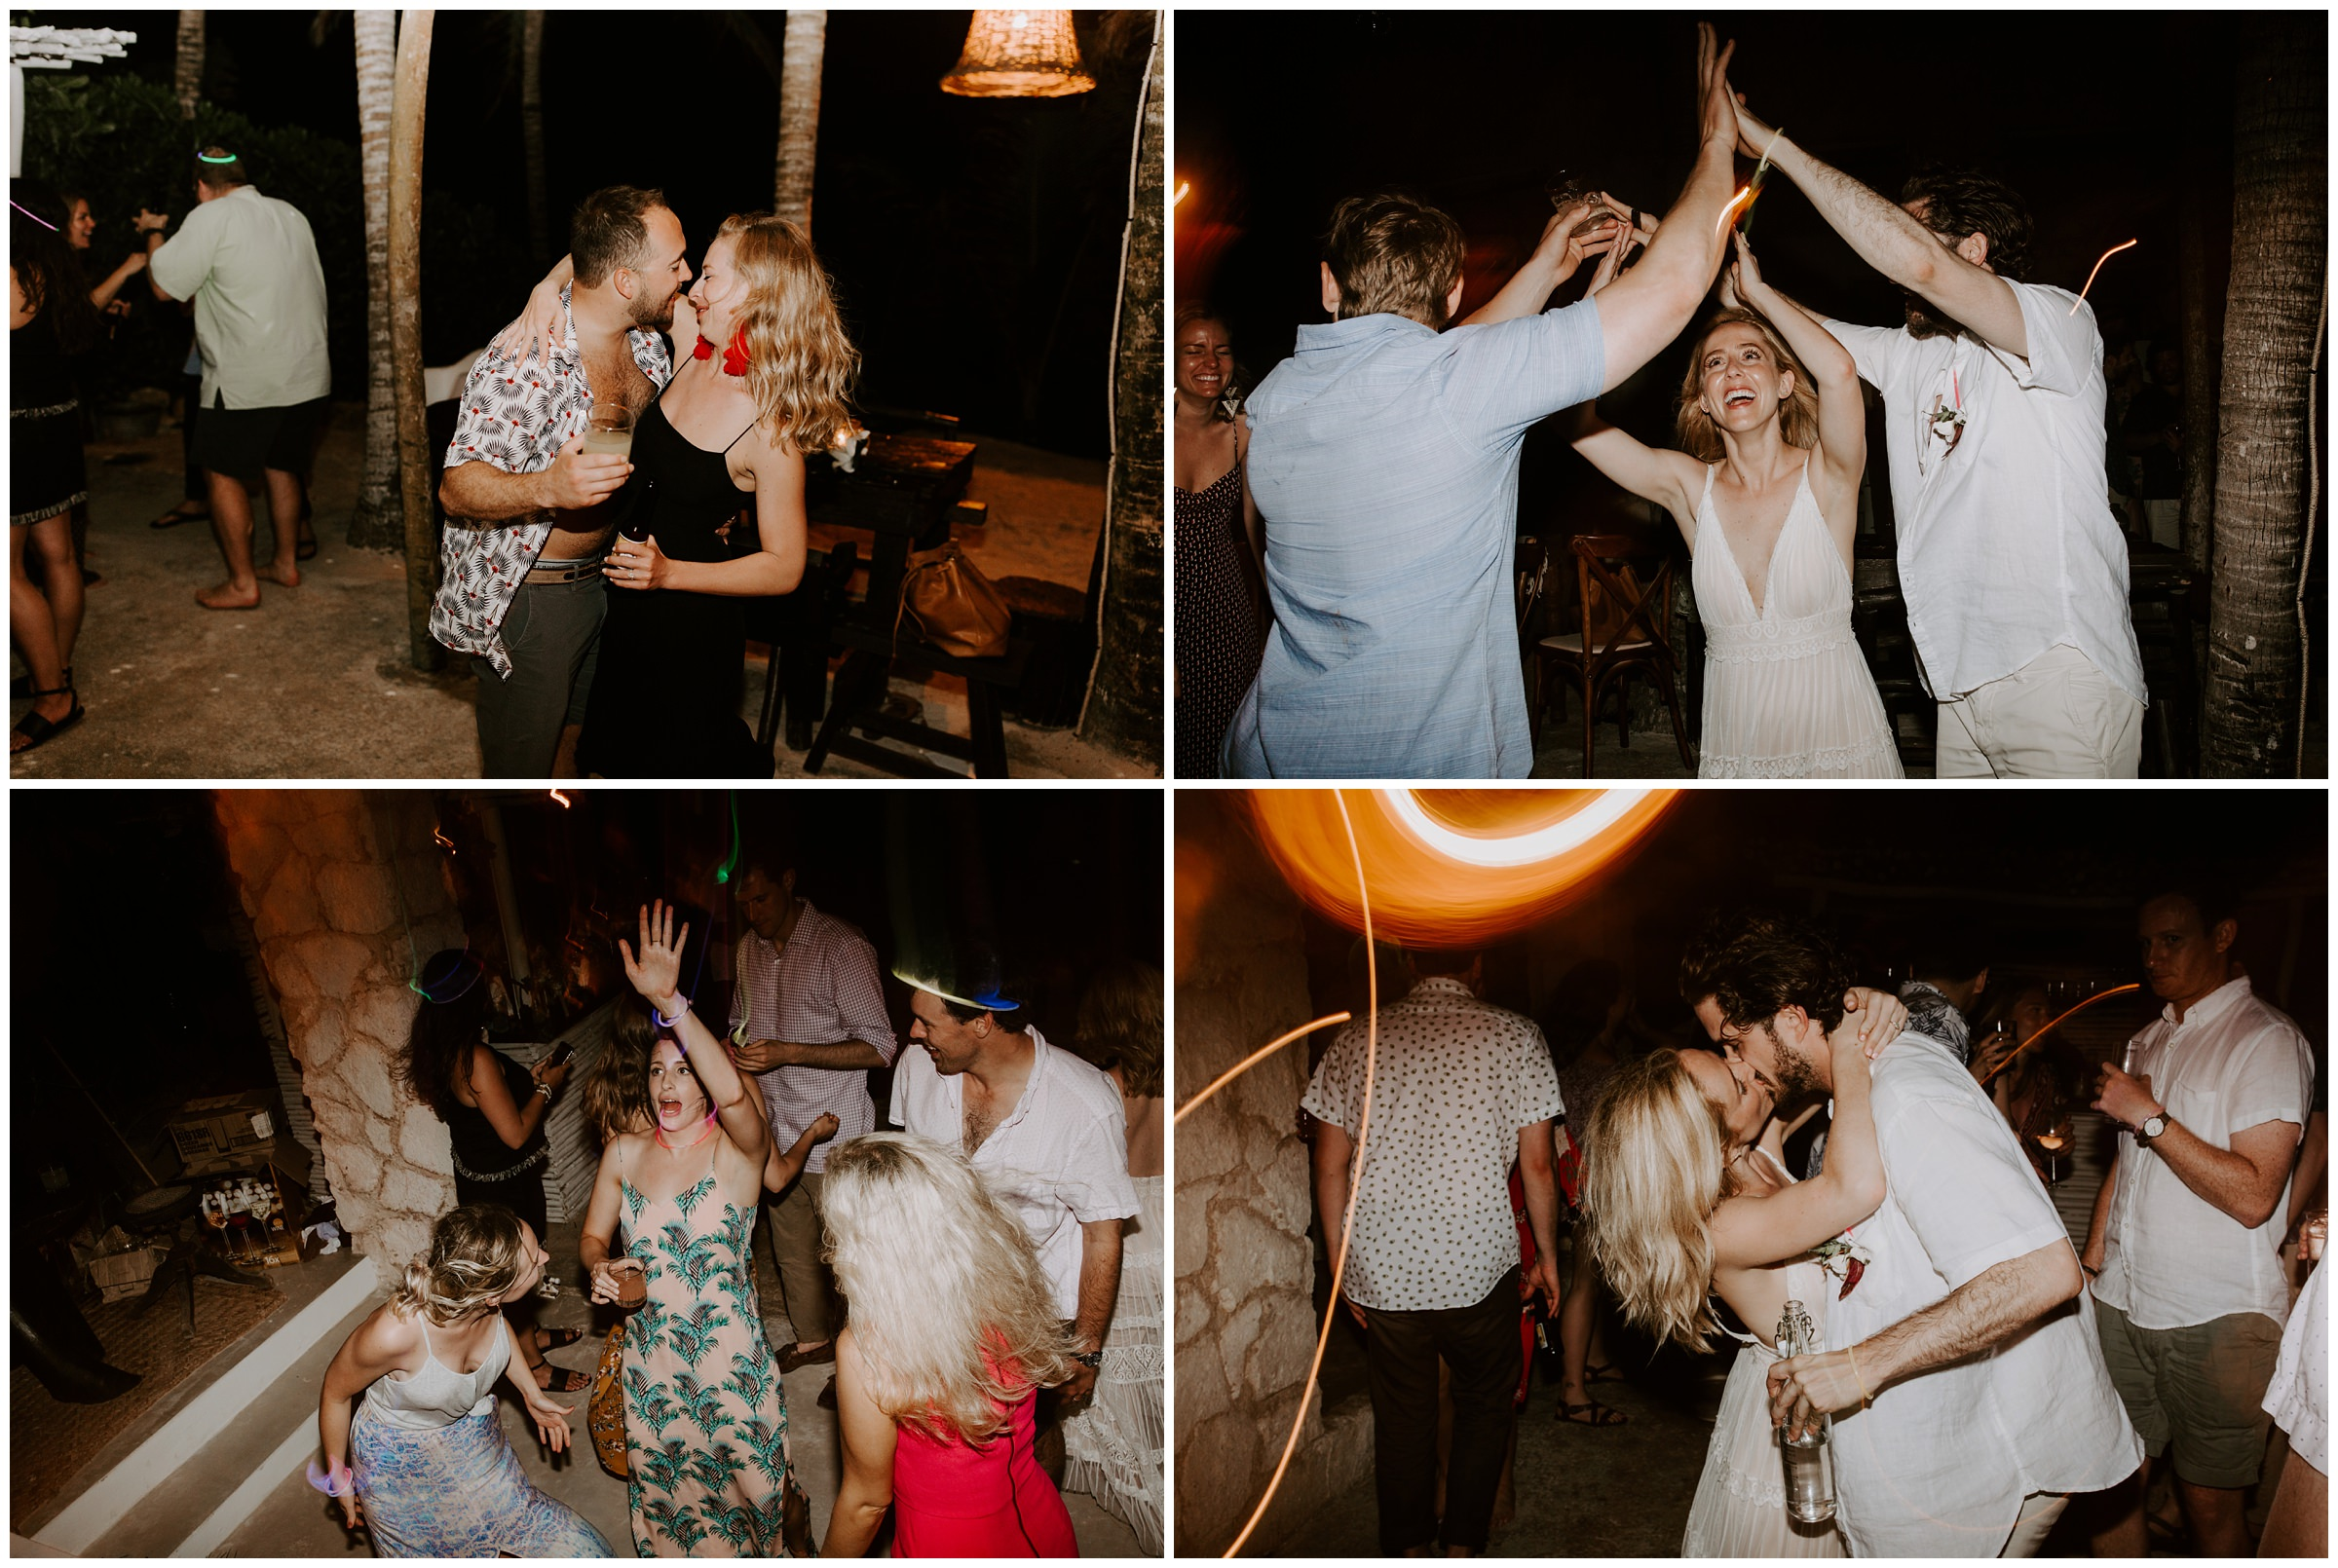 crazy dance party at wedding